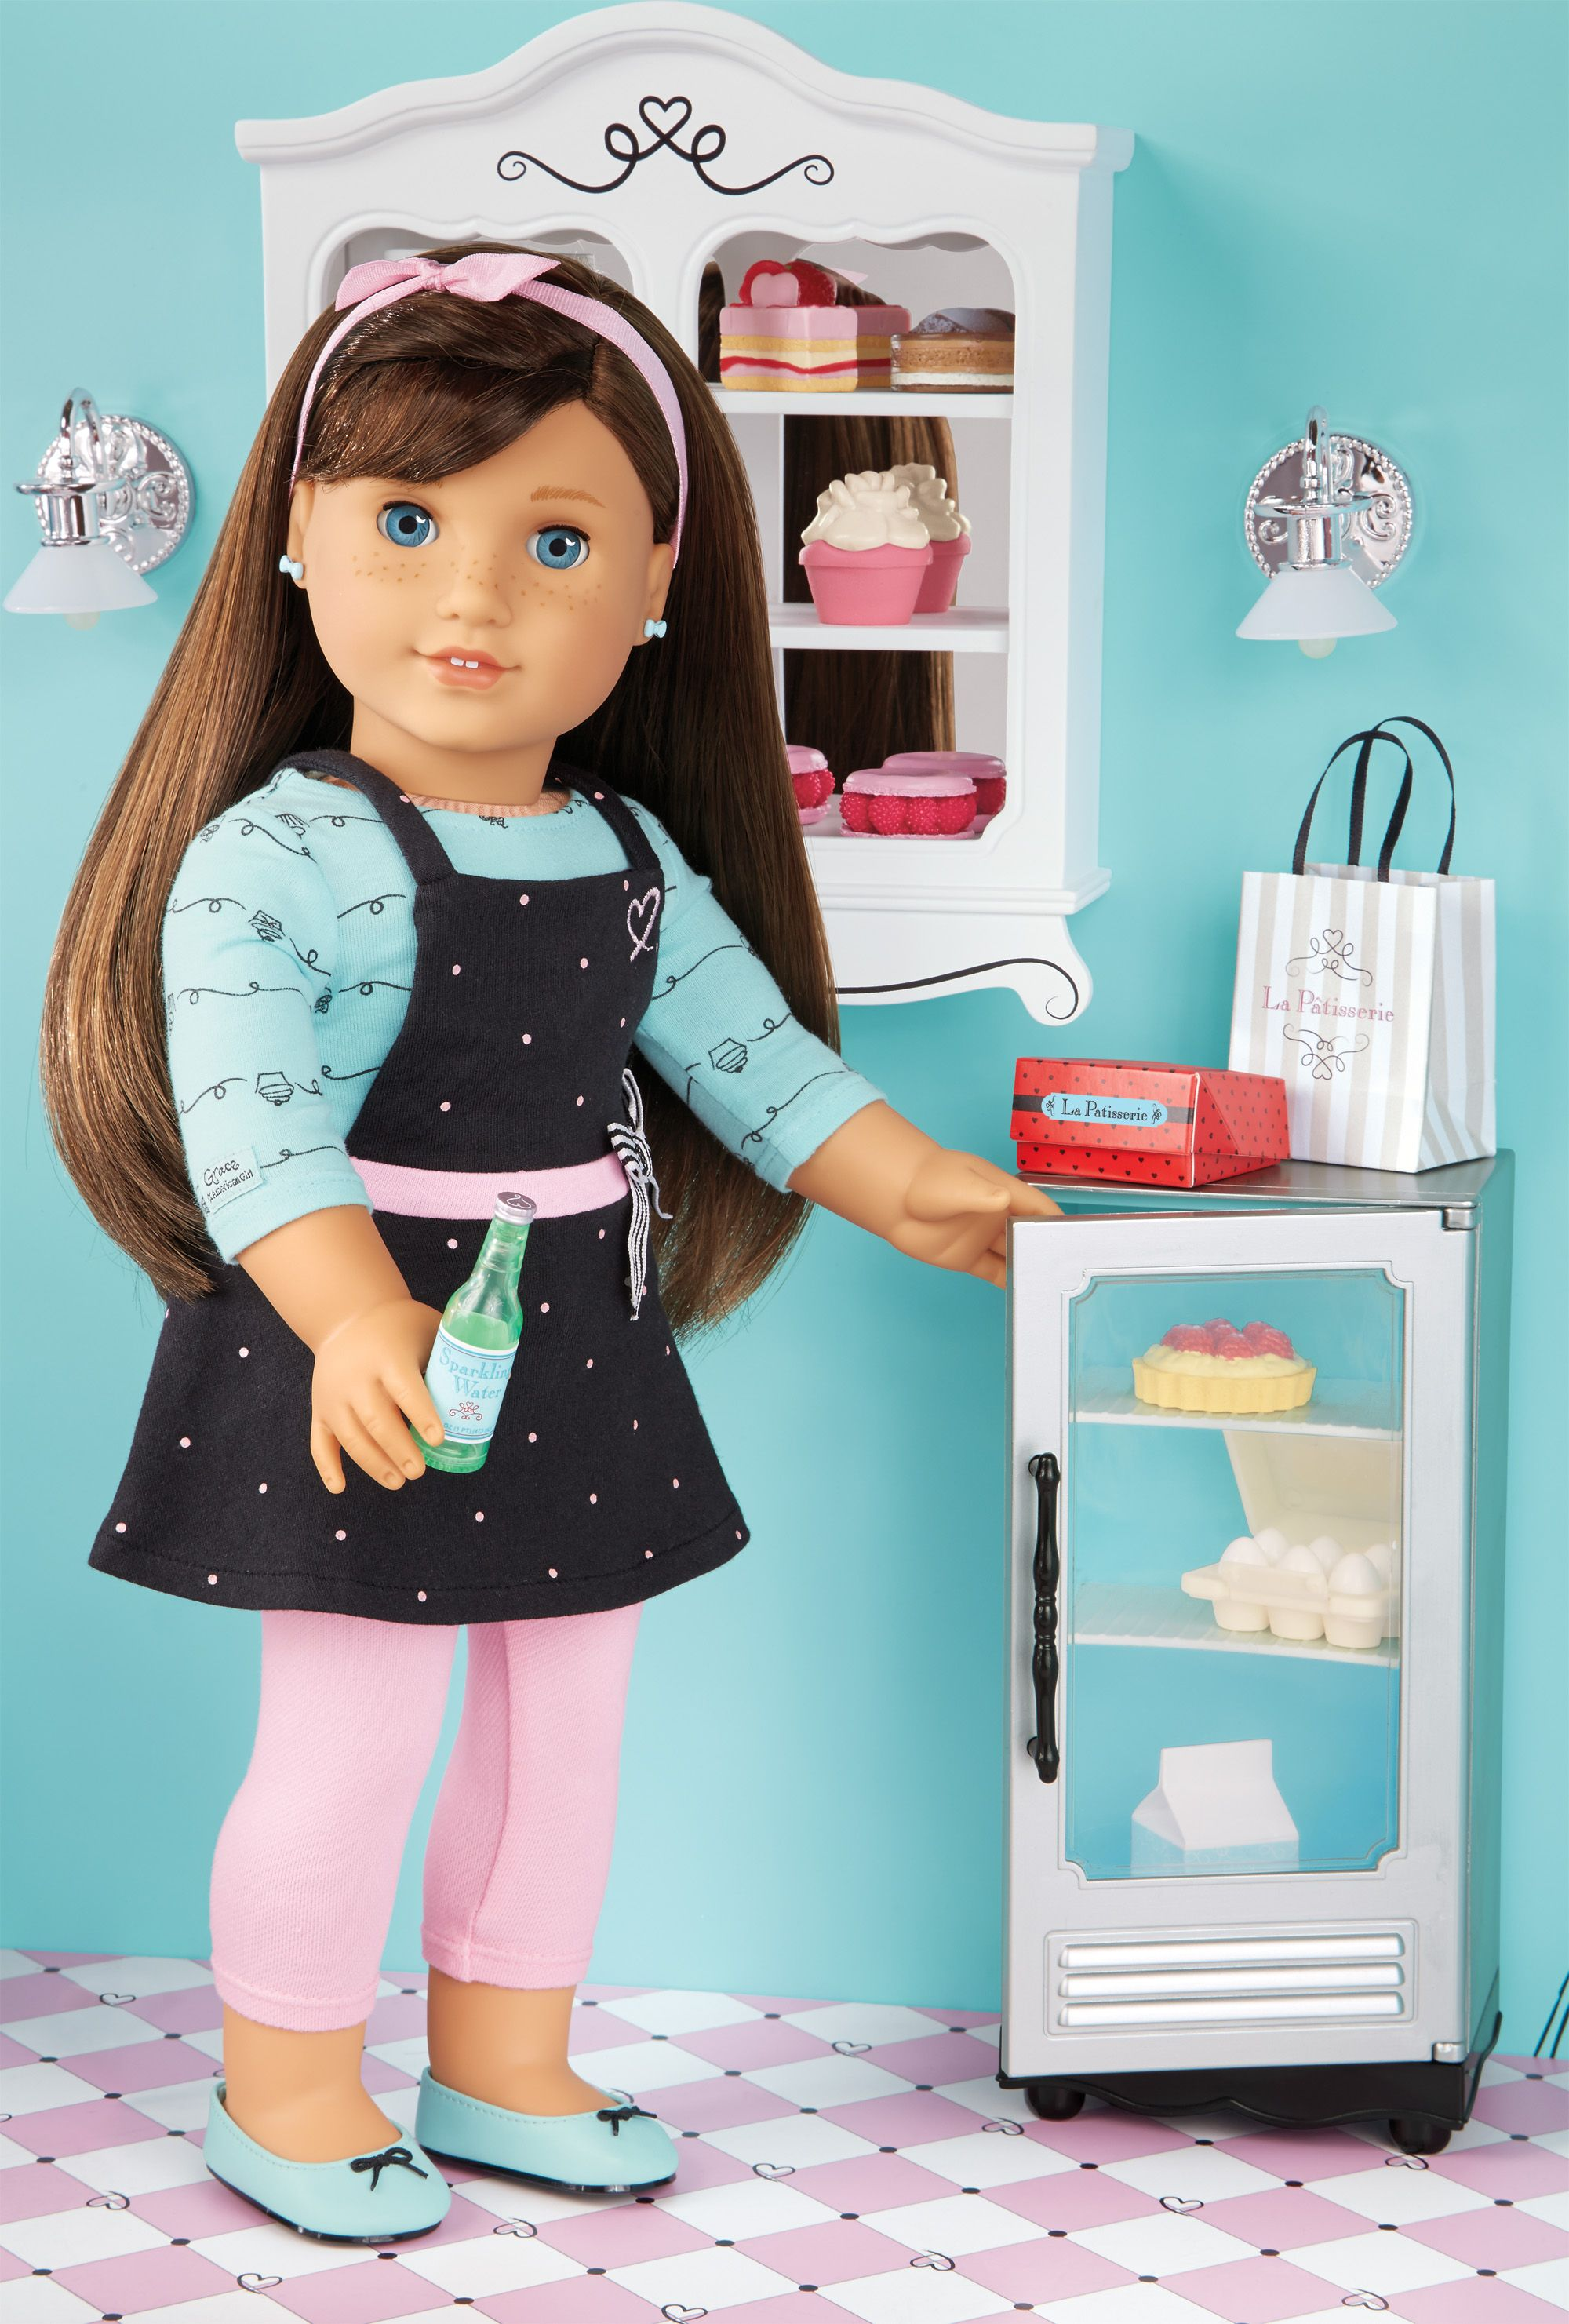 meet grace the 2015 american girl doll bakery accessories american girl and doll ideas. Black Bedroom Furniture Sets. Home Design Ideas